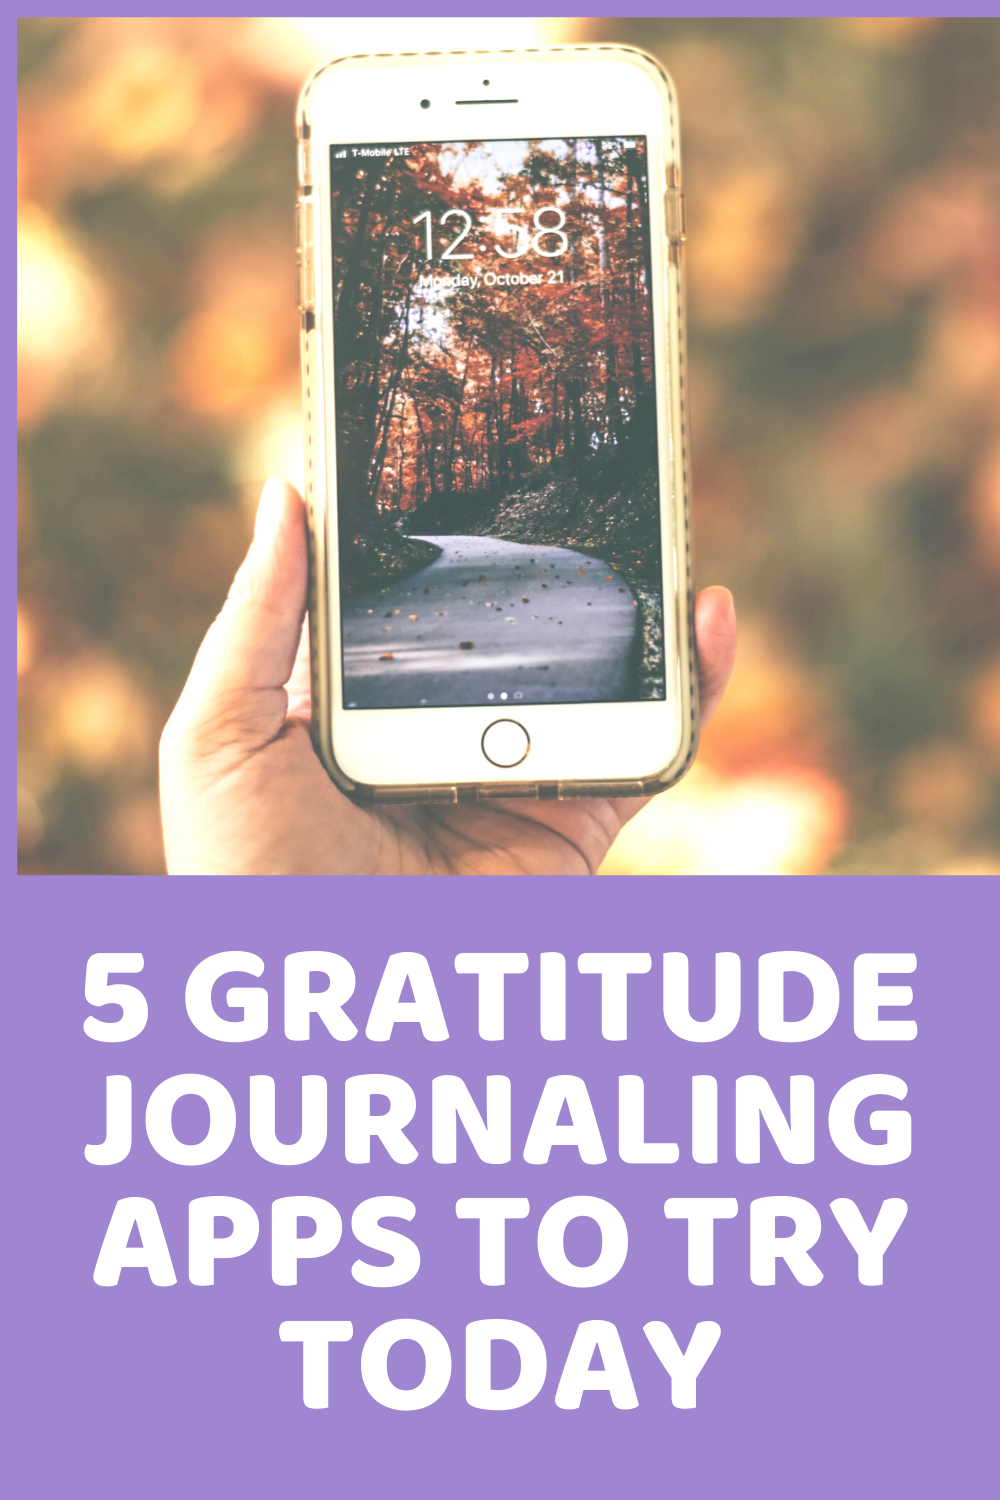 5 Gratitude Journaling Apps To Try Today